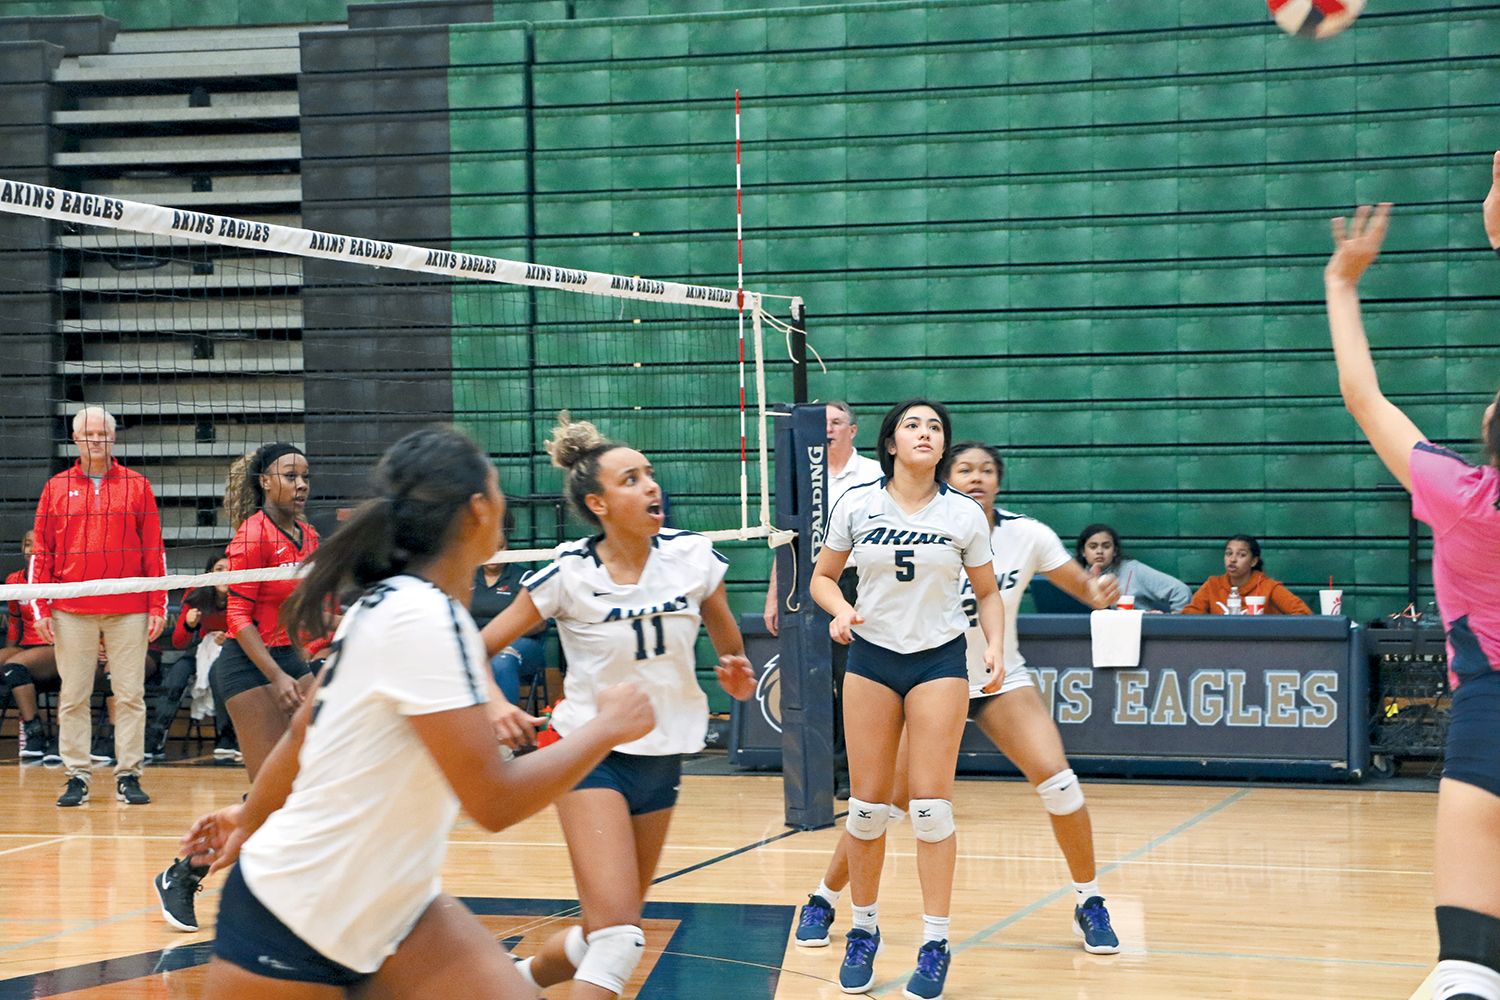 Seniors Zola Schemenauer-Moore (11) and Kayla Muñoz (5) move to play a ball in mid air. They played their final game as Eagles against Del Valle.